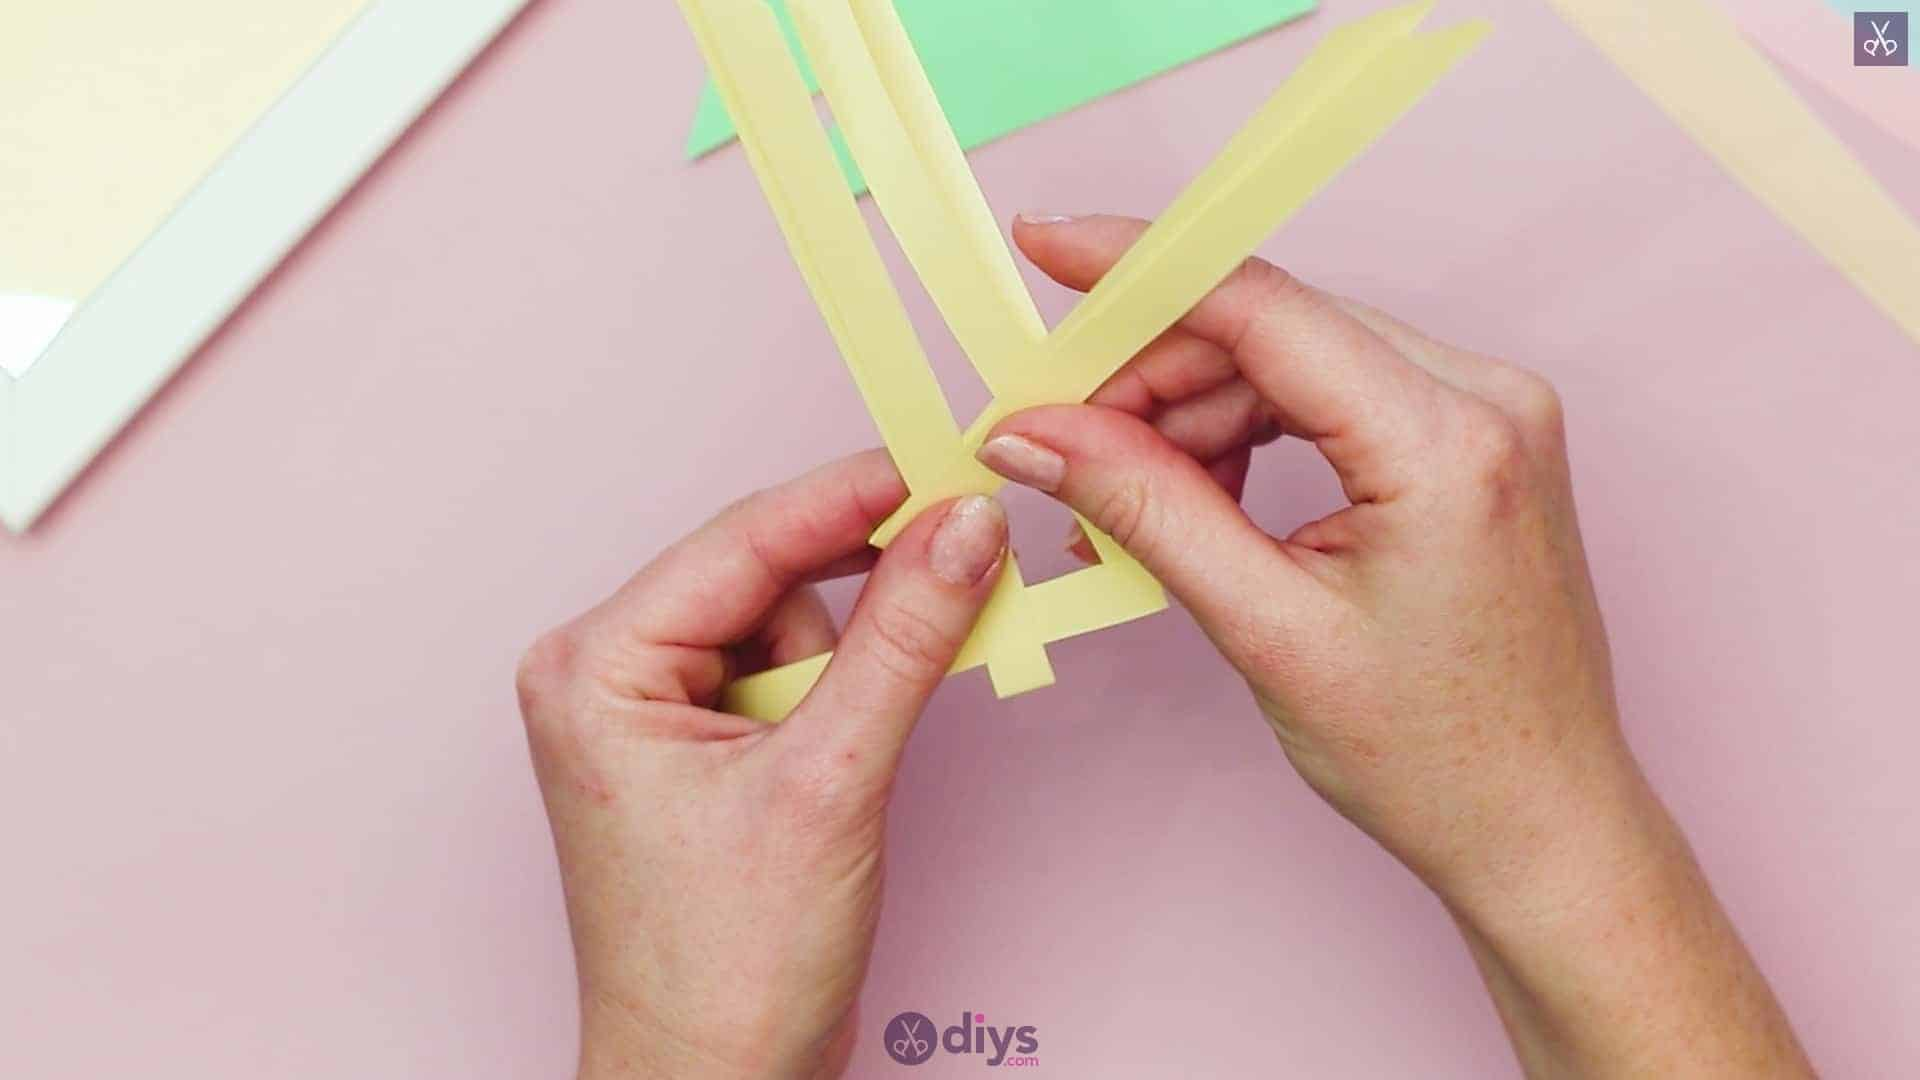 Diy origami flower art step 3c